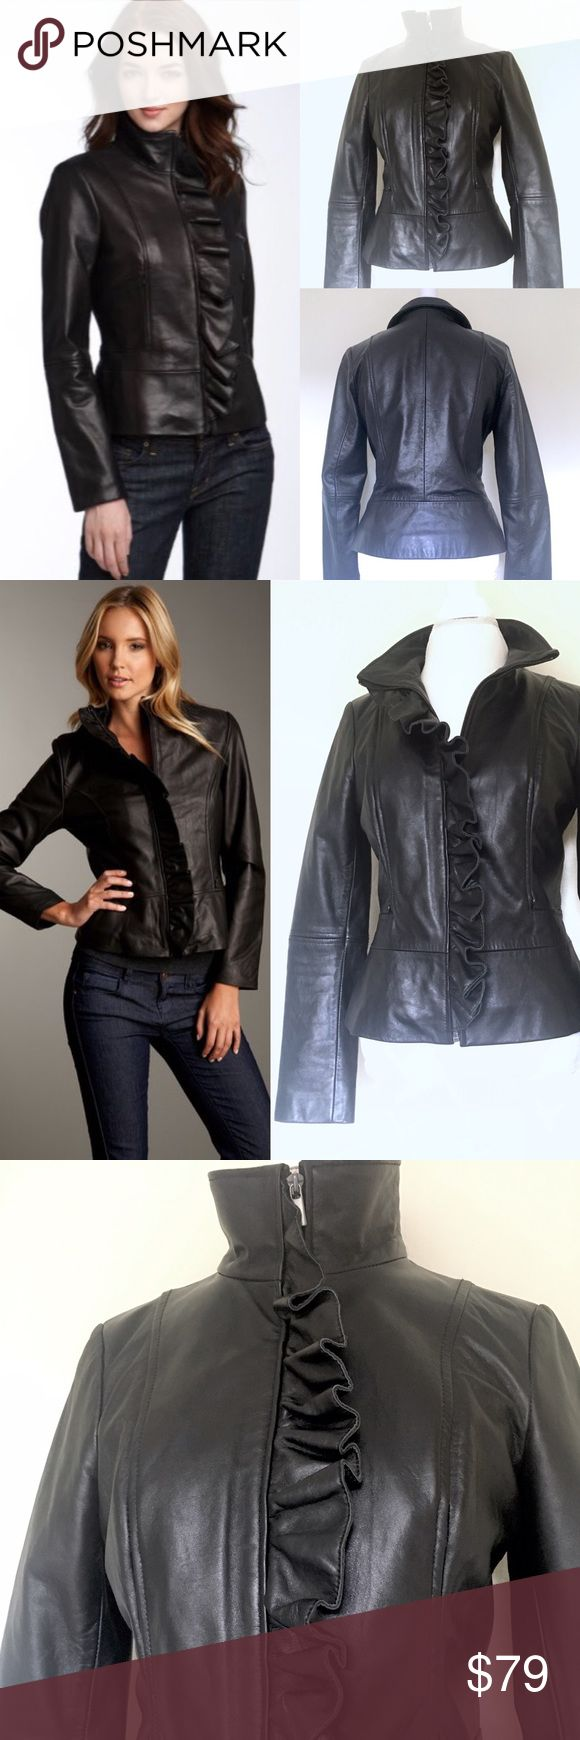 "❤TAHARI Perry Black Ruffle Lambskin Leather Jacket TAHARI Perry Black Ruffle-Front Lambskin Leather Scuba Jacket. $595 new. Size M. NWOT(2big4me!), no flaws, pet/smoke free home. Lush ruffle adds romance to sleek, supple leather sculpted w/expert seaming+topped w/chic stand collar. Mid-weight, supple soft lambskin leather; asymmetrical zip front placket w/ruffle trim, princess seaming@bust w/on-seam zippered pockets, long sleeves, fully lined. Measures flat approx L:22"", Underarm2cuff…"